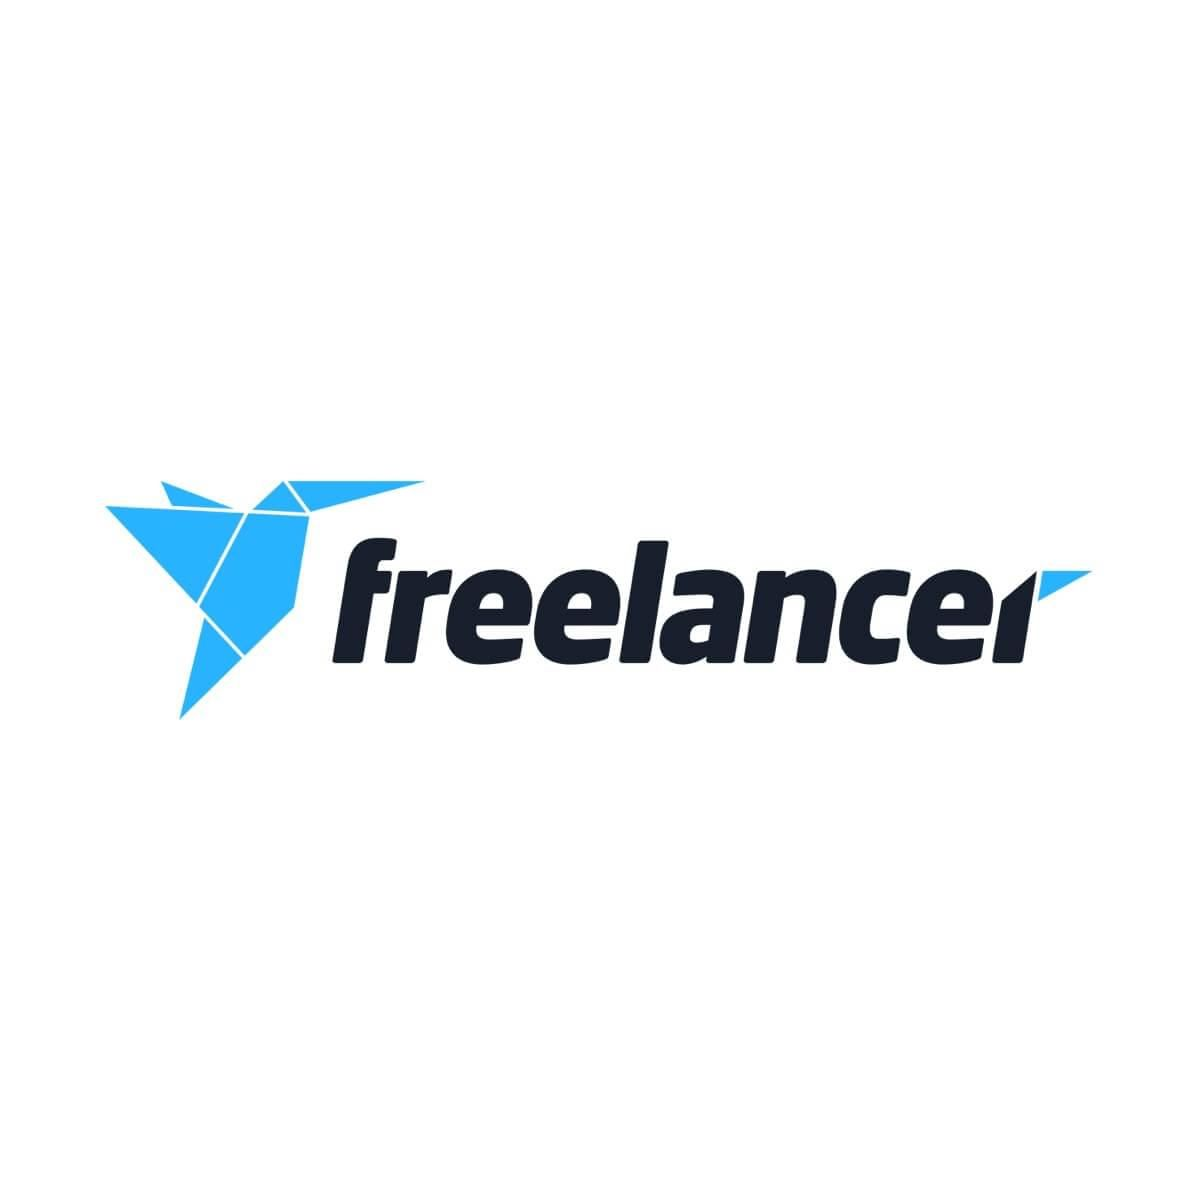 We Are A Startup Digital Marketing Company And Wish To Hire Someone To Create Social Media Branding And Guide Data Entry Projects Freelancing Jobs Data Entry